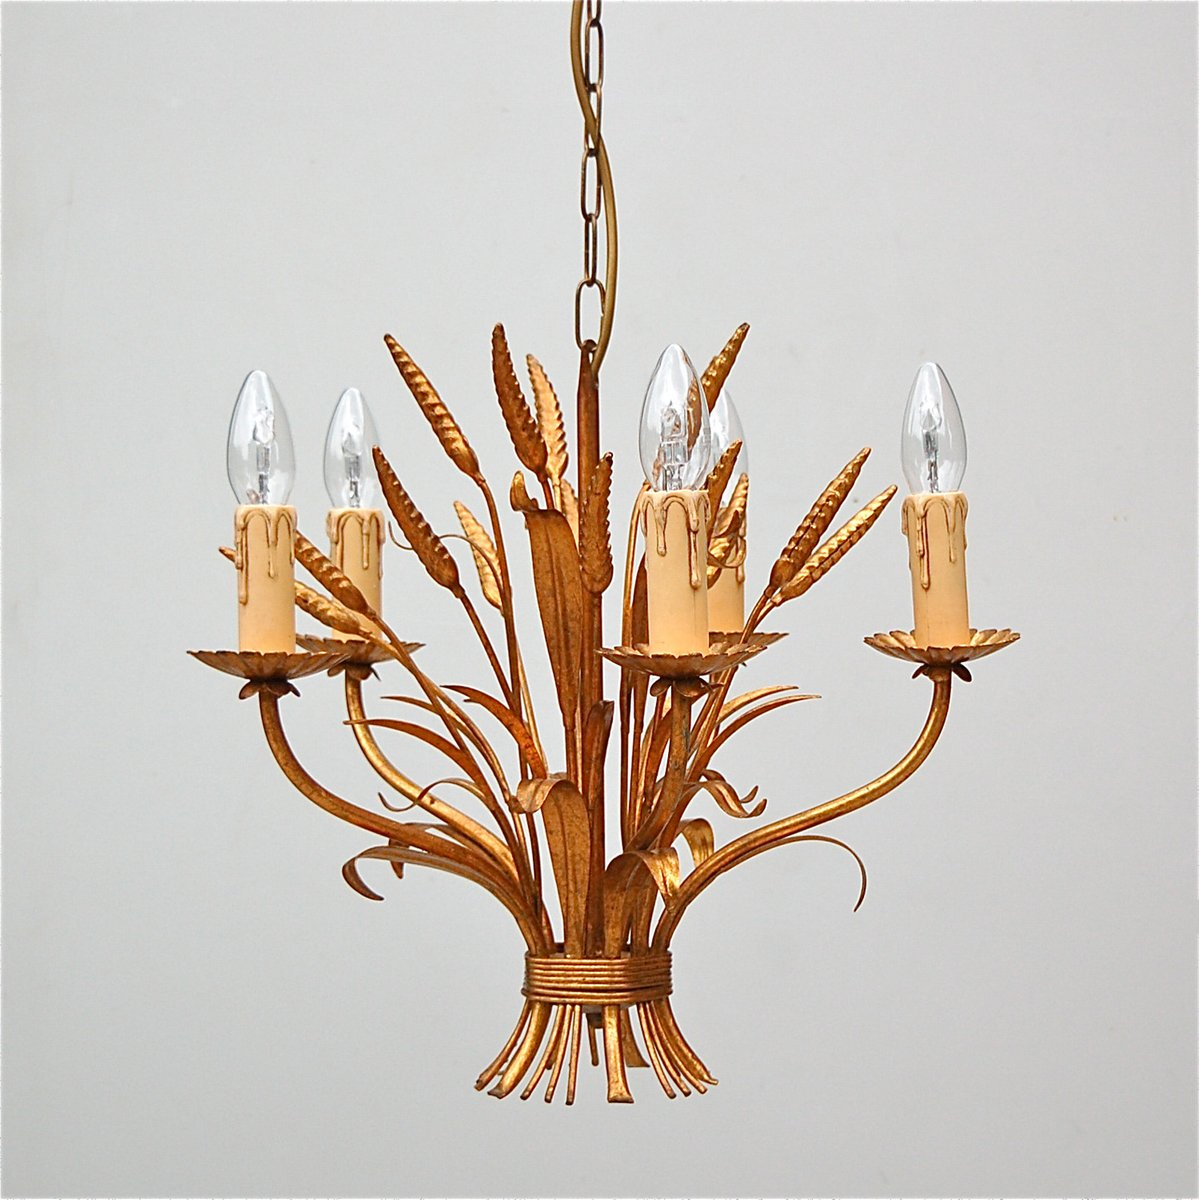 Italian sheaf of wheat tole chandelier 1970s for sale at pamono italian sheaf of wheat tole chandelier 1970s mozeypictures Image collections